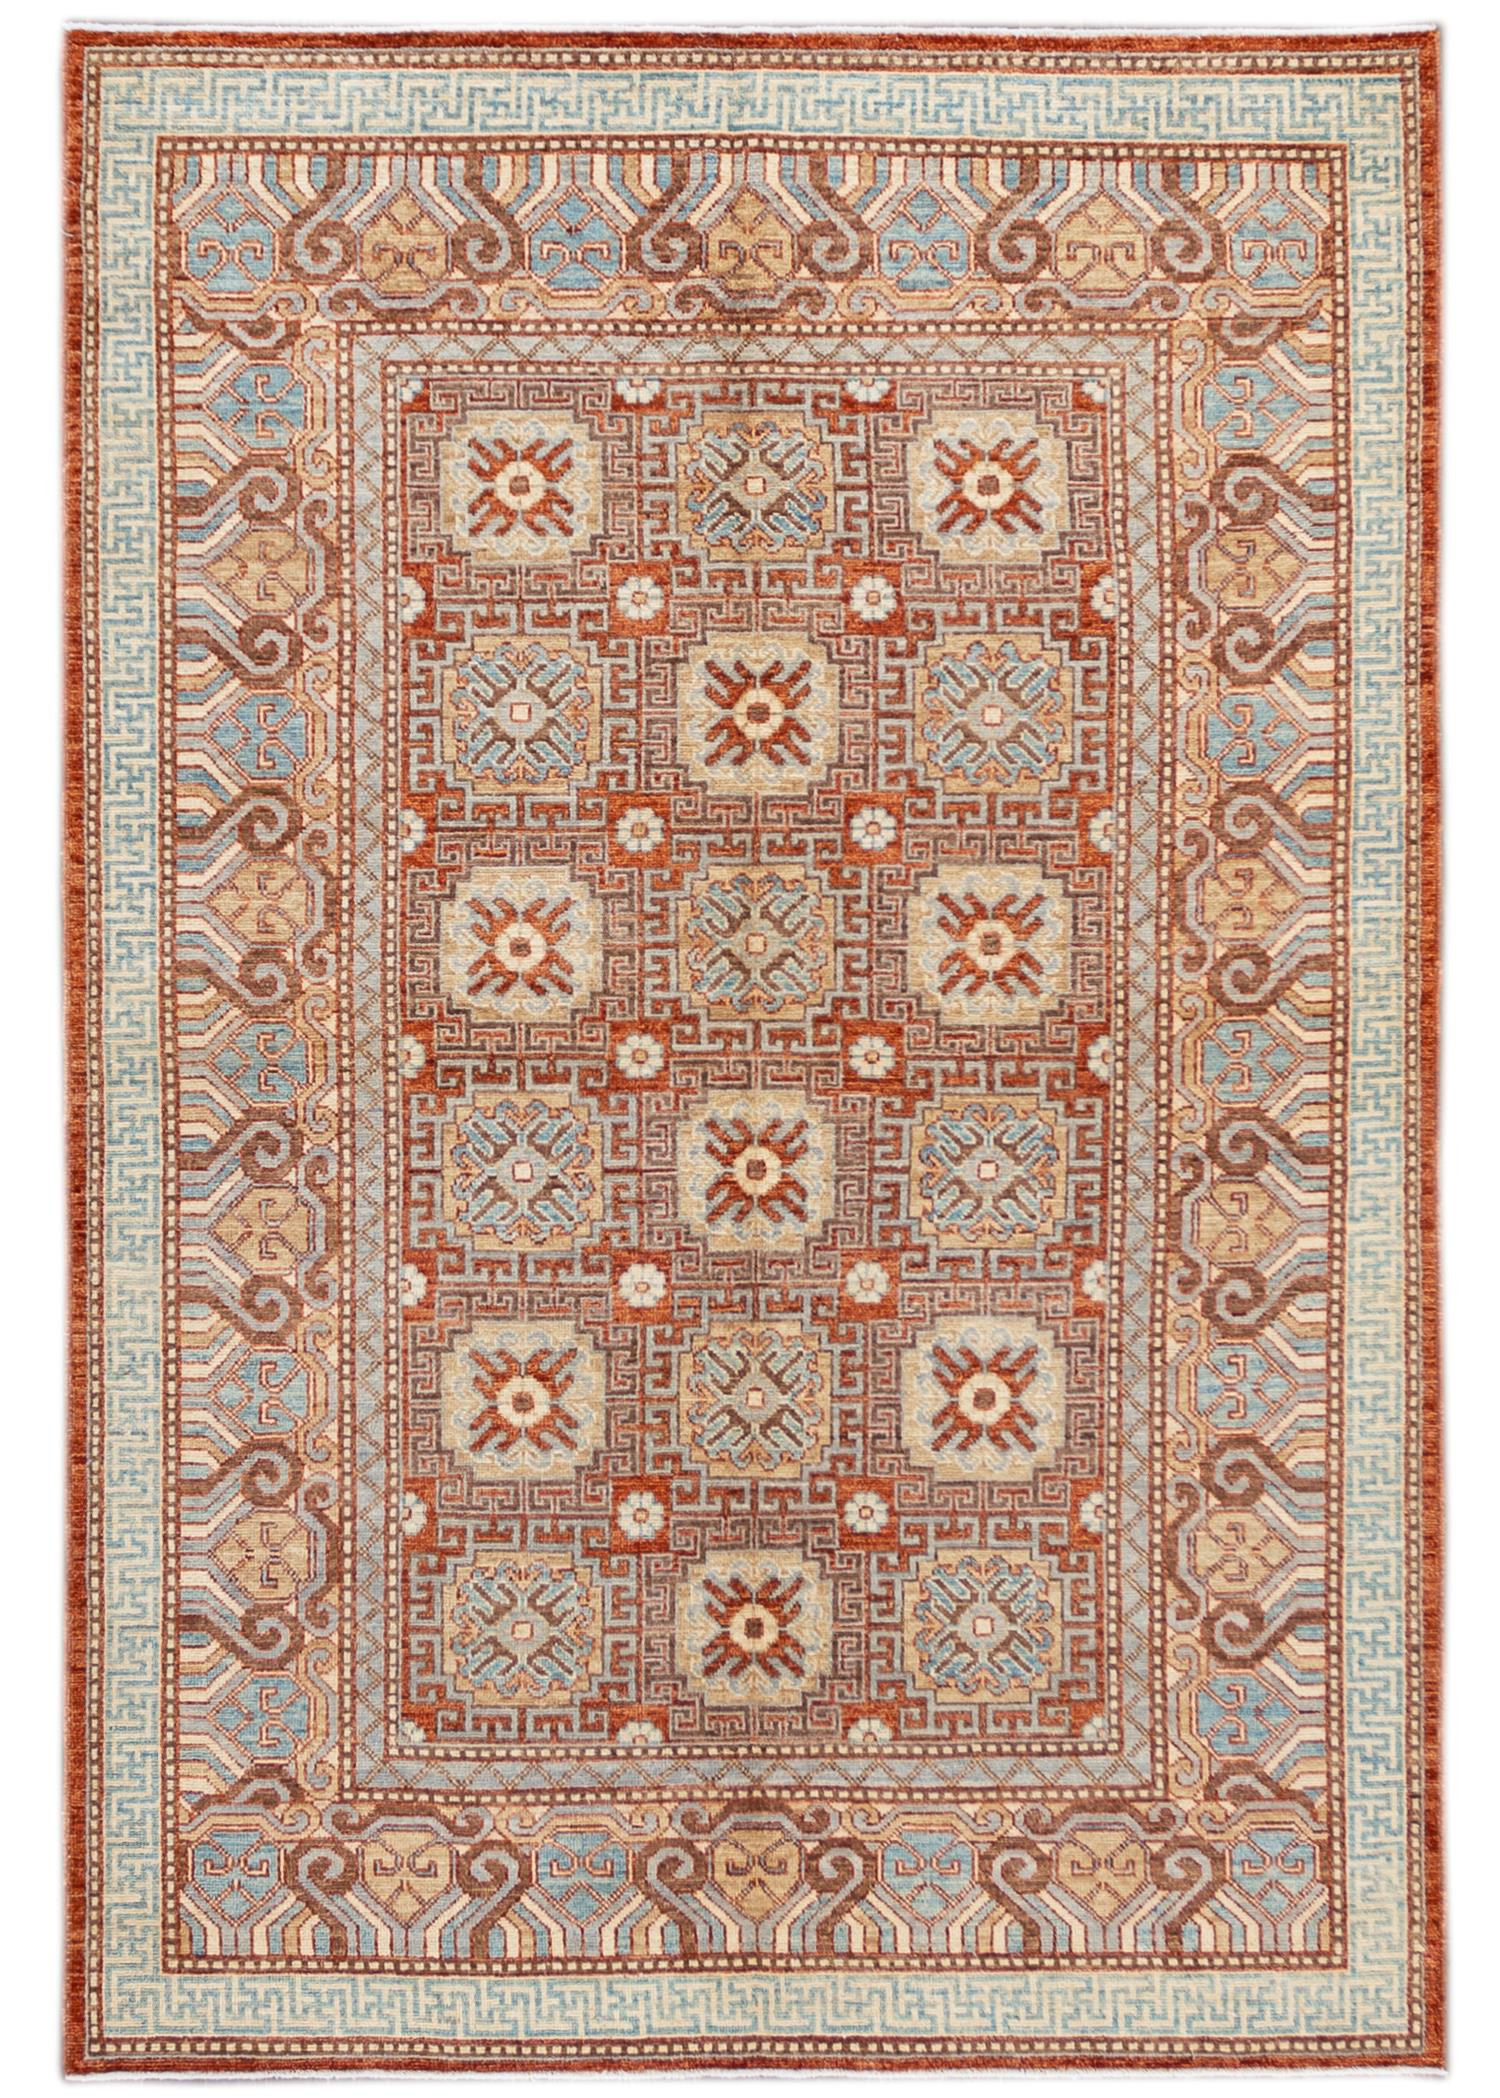 Contemporary Rust and Blue Khotan-Style Wool Area Rug 7' x 9'